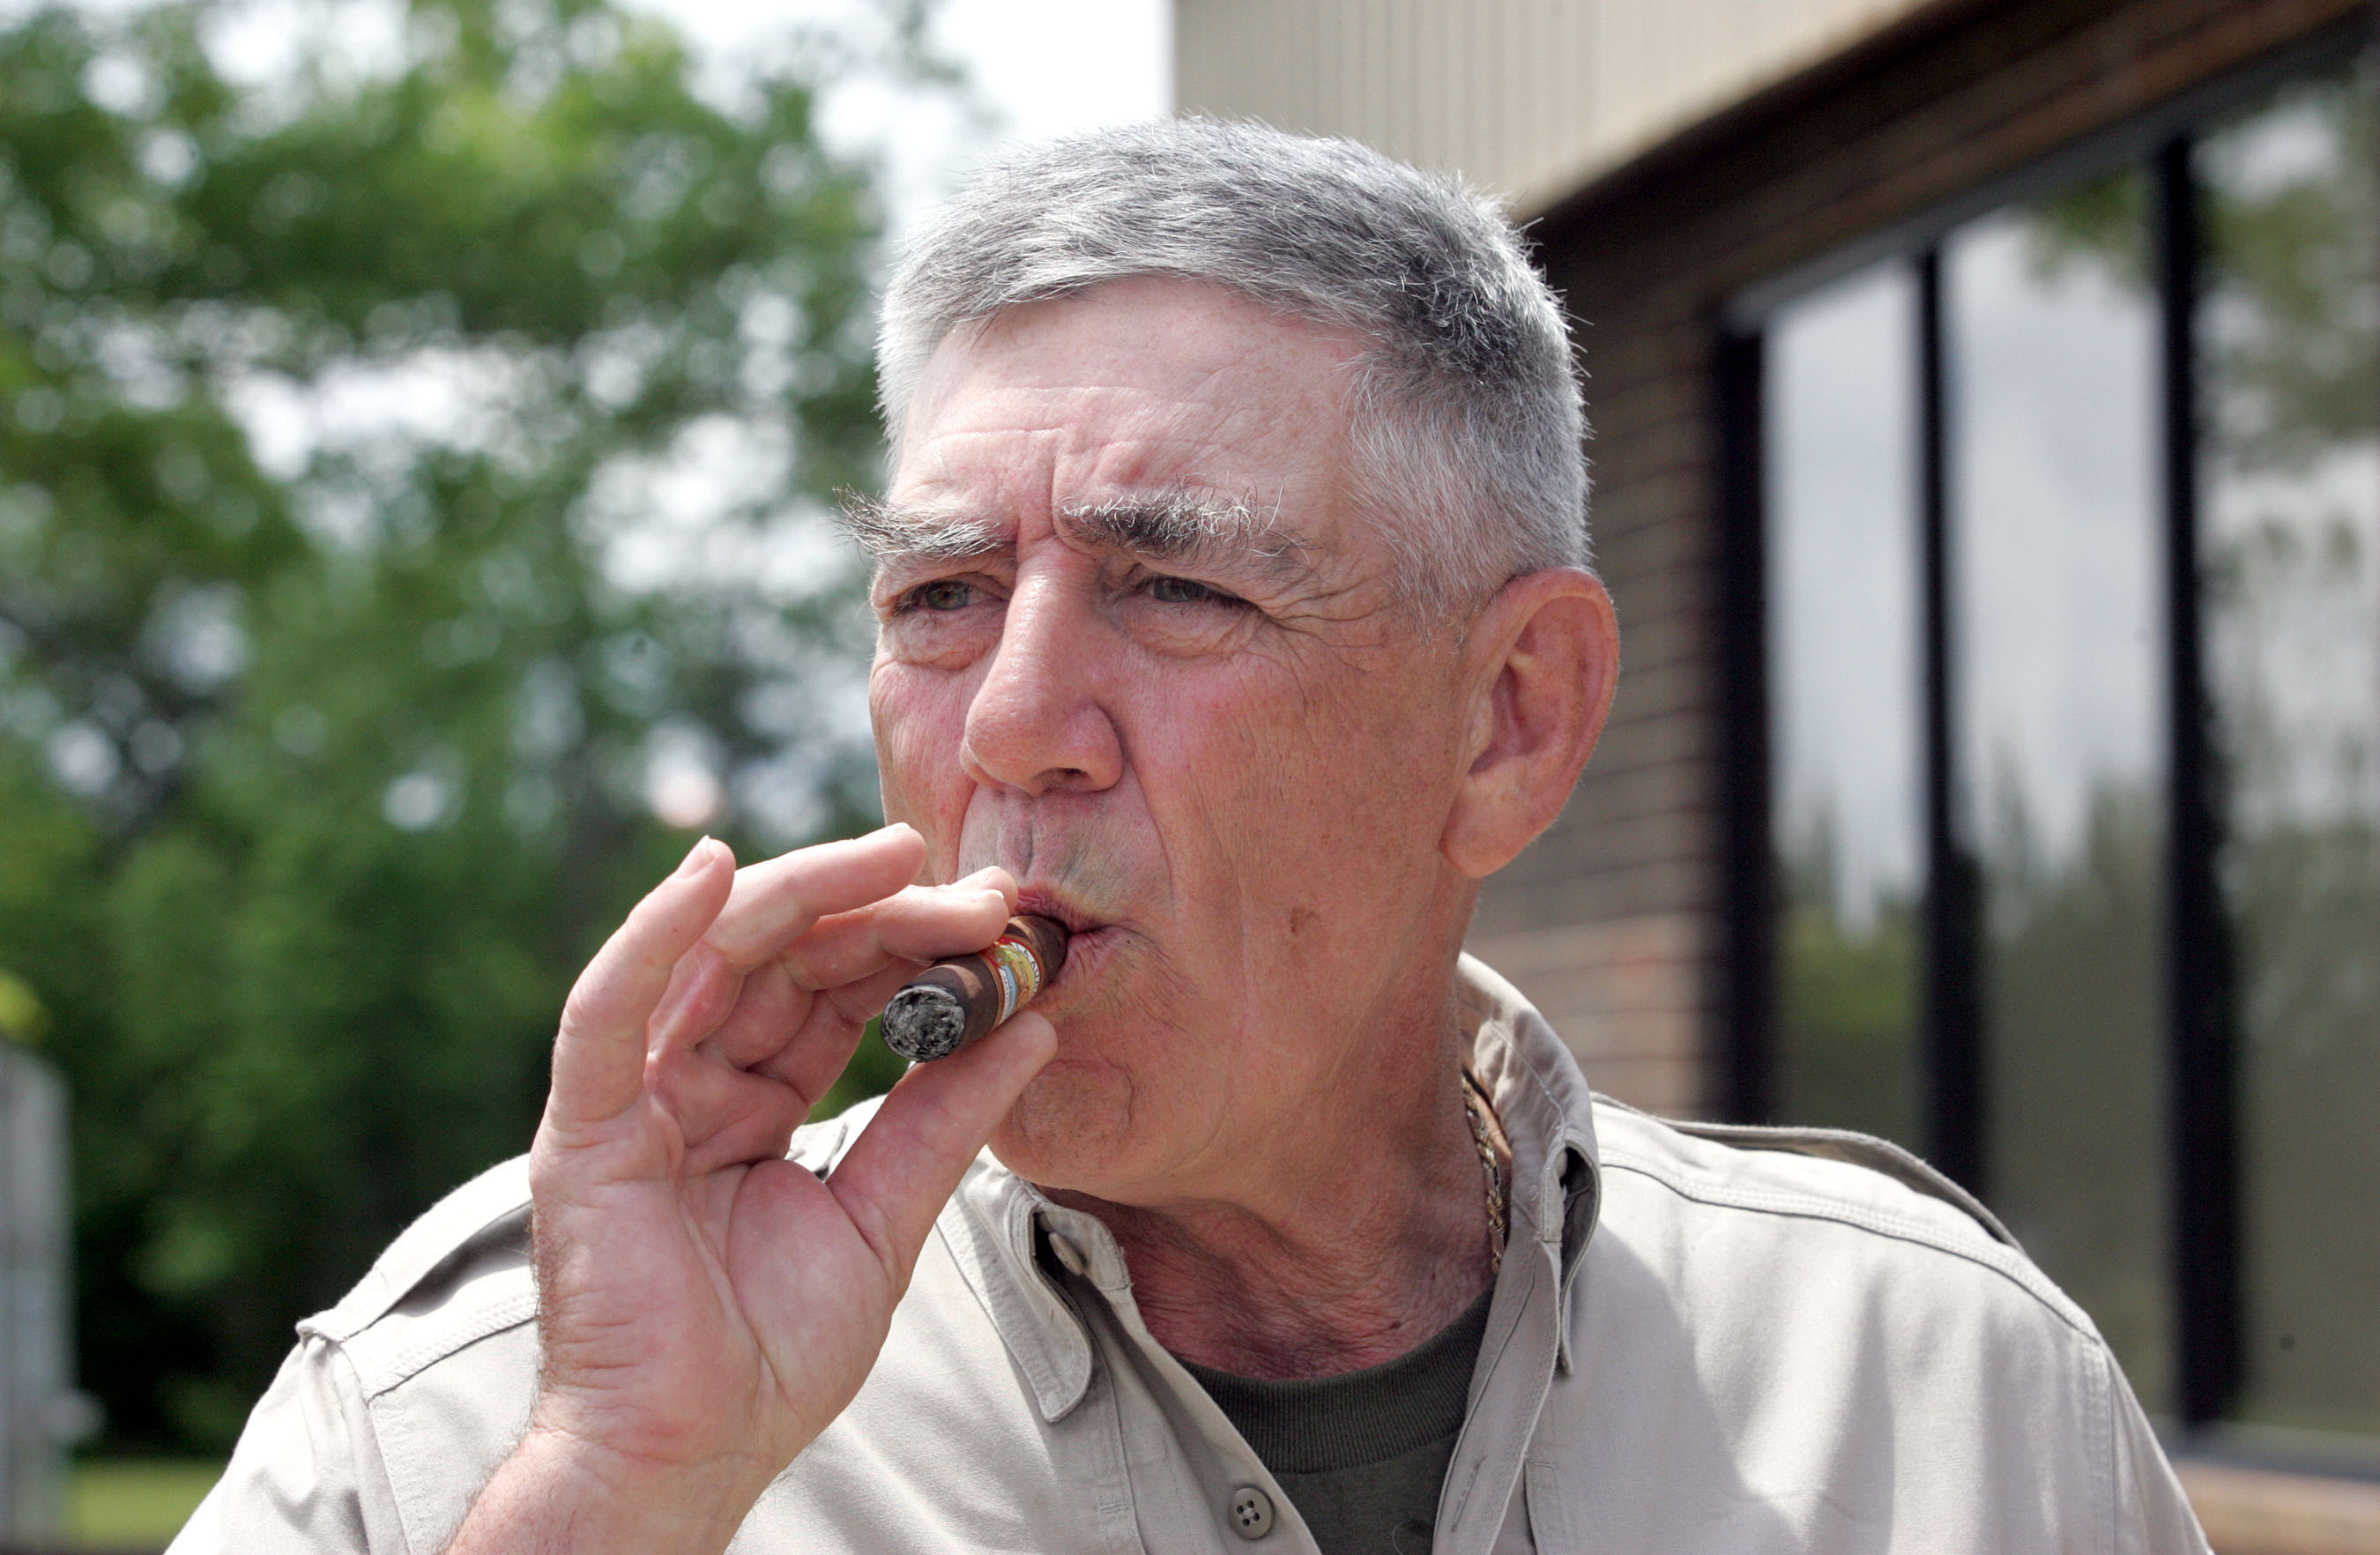 Retired Marine Gunnery Sgt. R. Lee Ermey takes a break for a smoke outside New River Air Station's Staff NCO club, Monday, May 15, 2006, in Jacksonville, N.C. When people meet Ermey, the first thing they realize is his show-stopping turn as a Marine Corps drill instructor in the movie